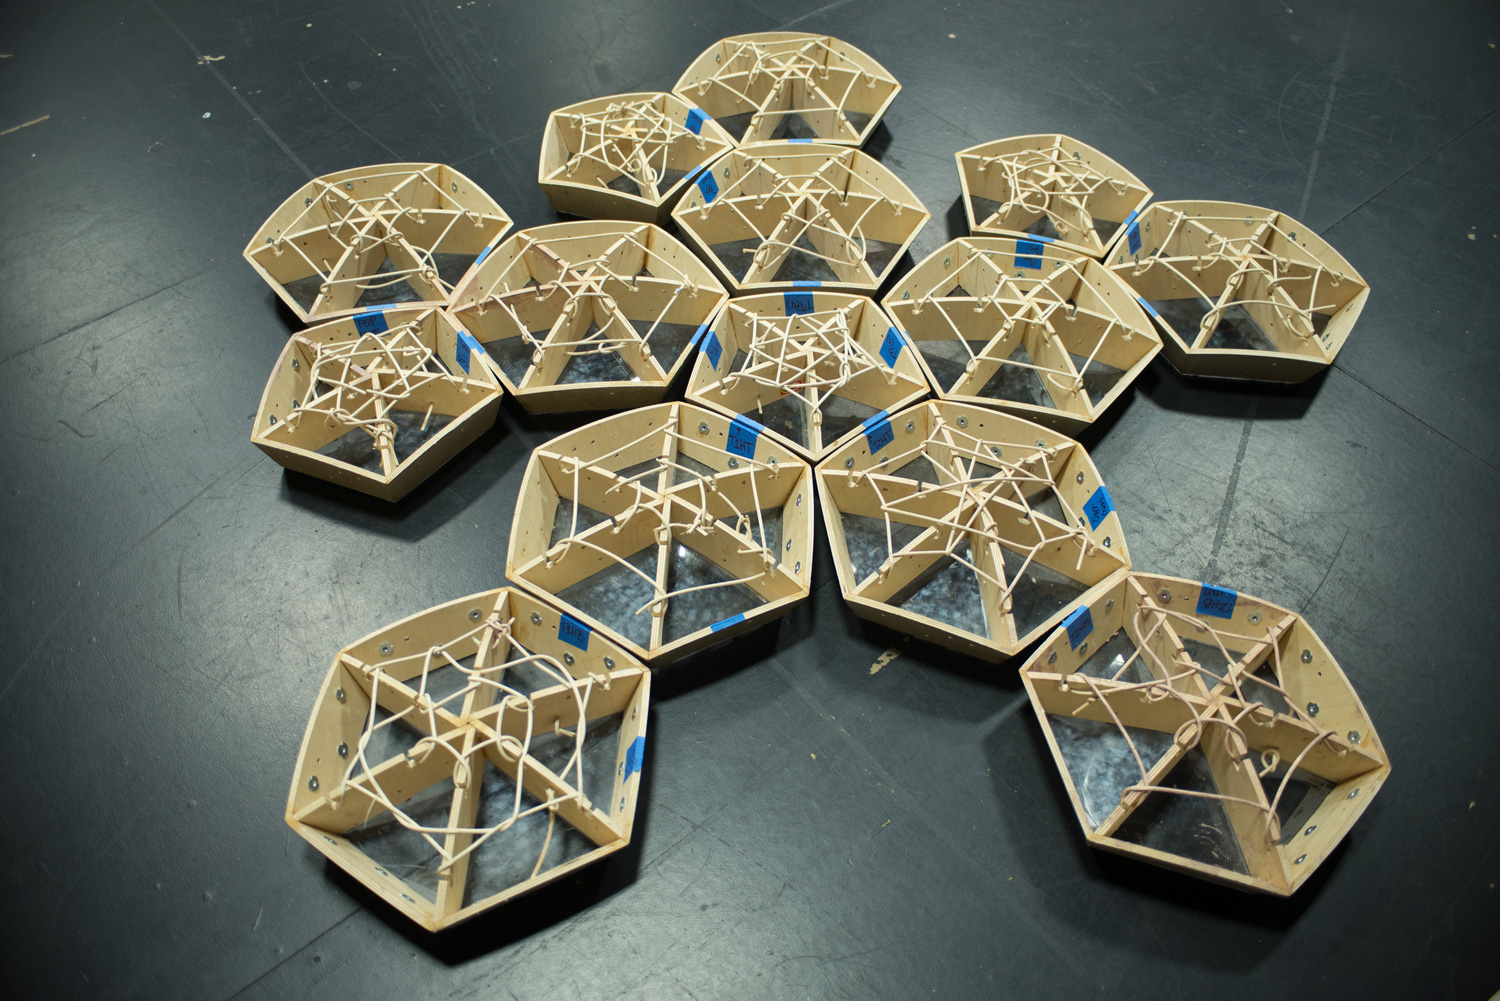 TZ'IJK.1.   Hexagonal and pentagonal wooden frames ready to be assembled.